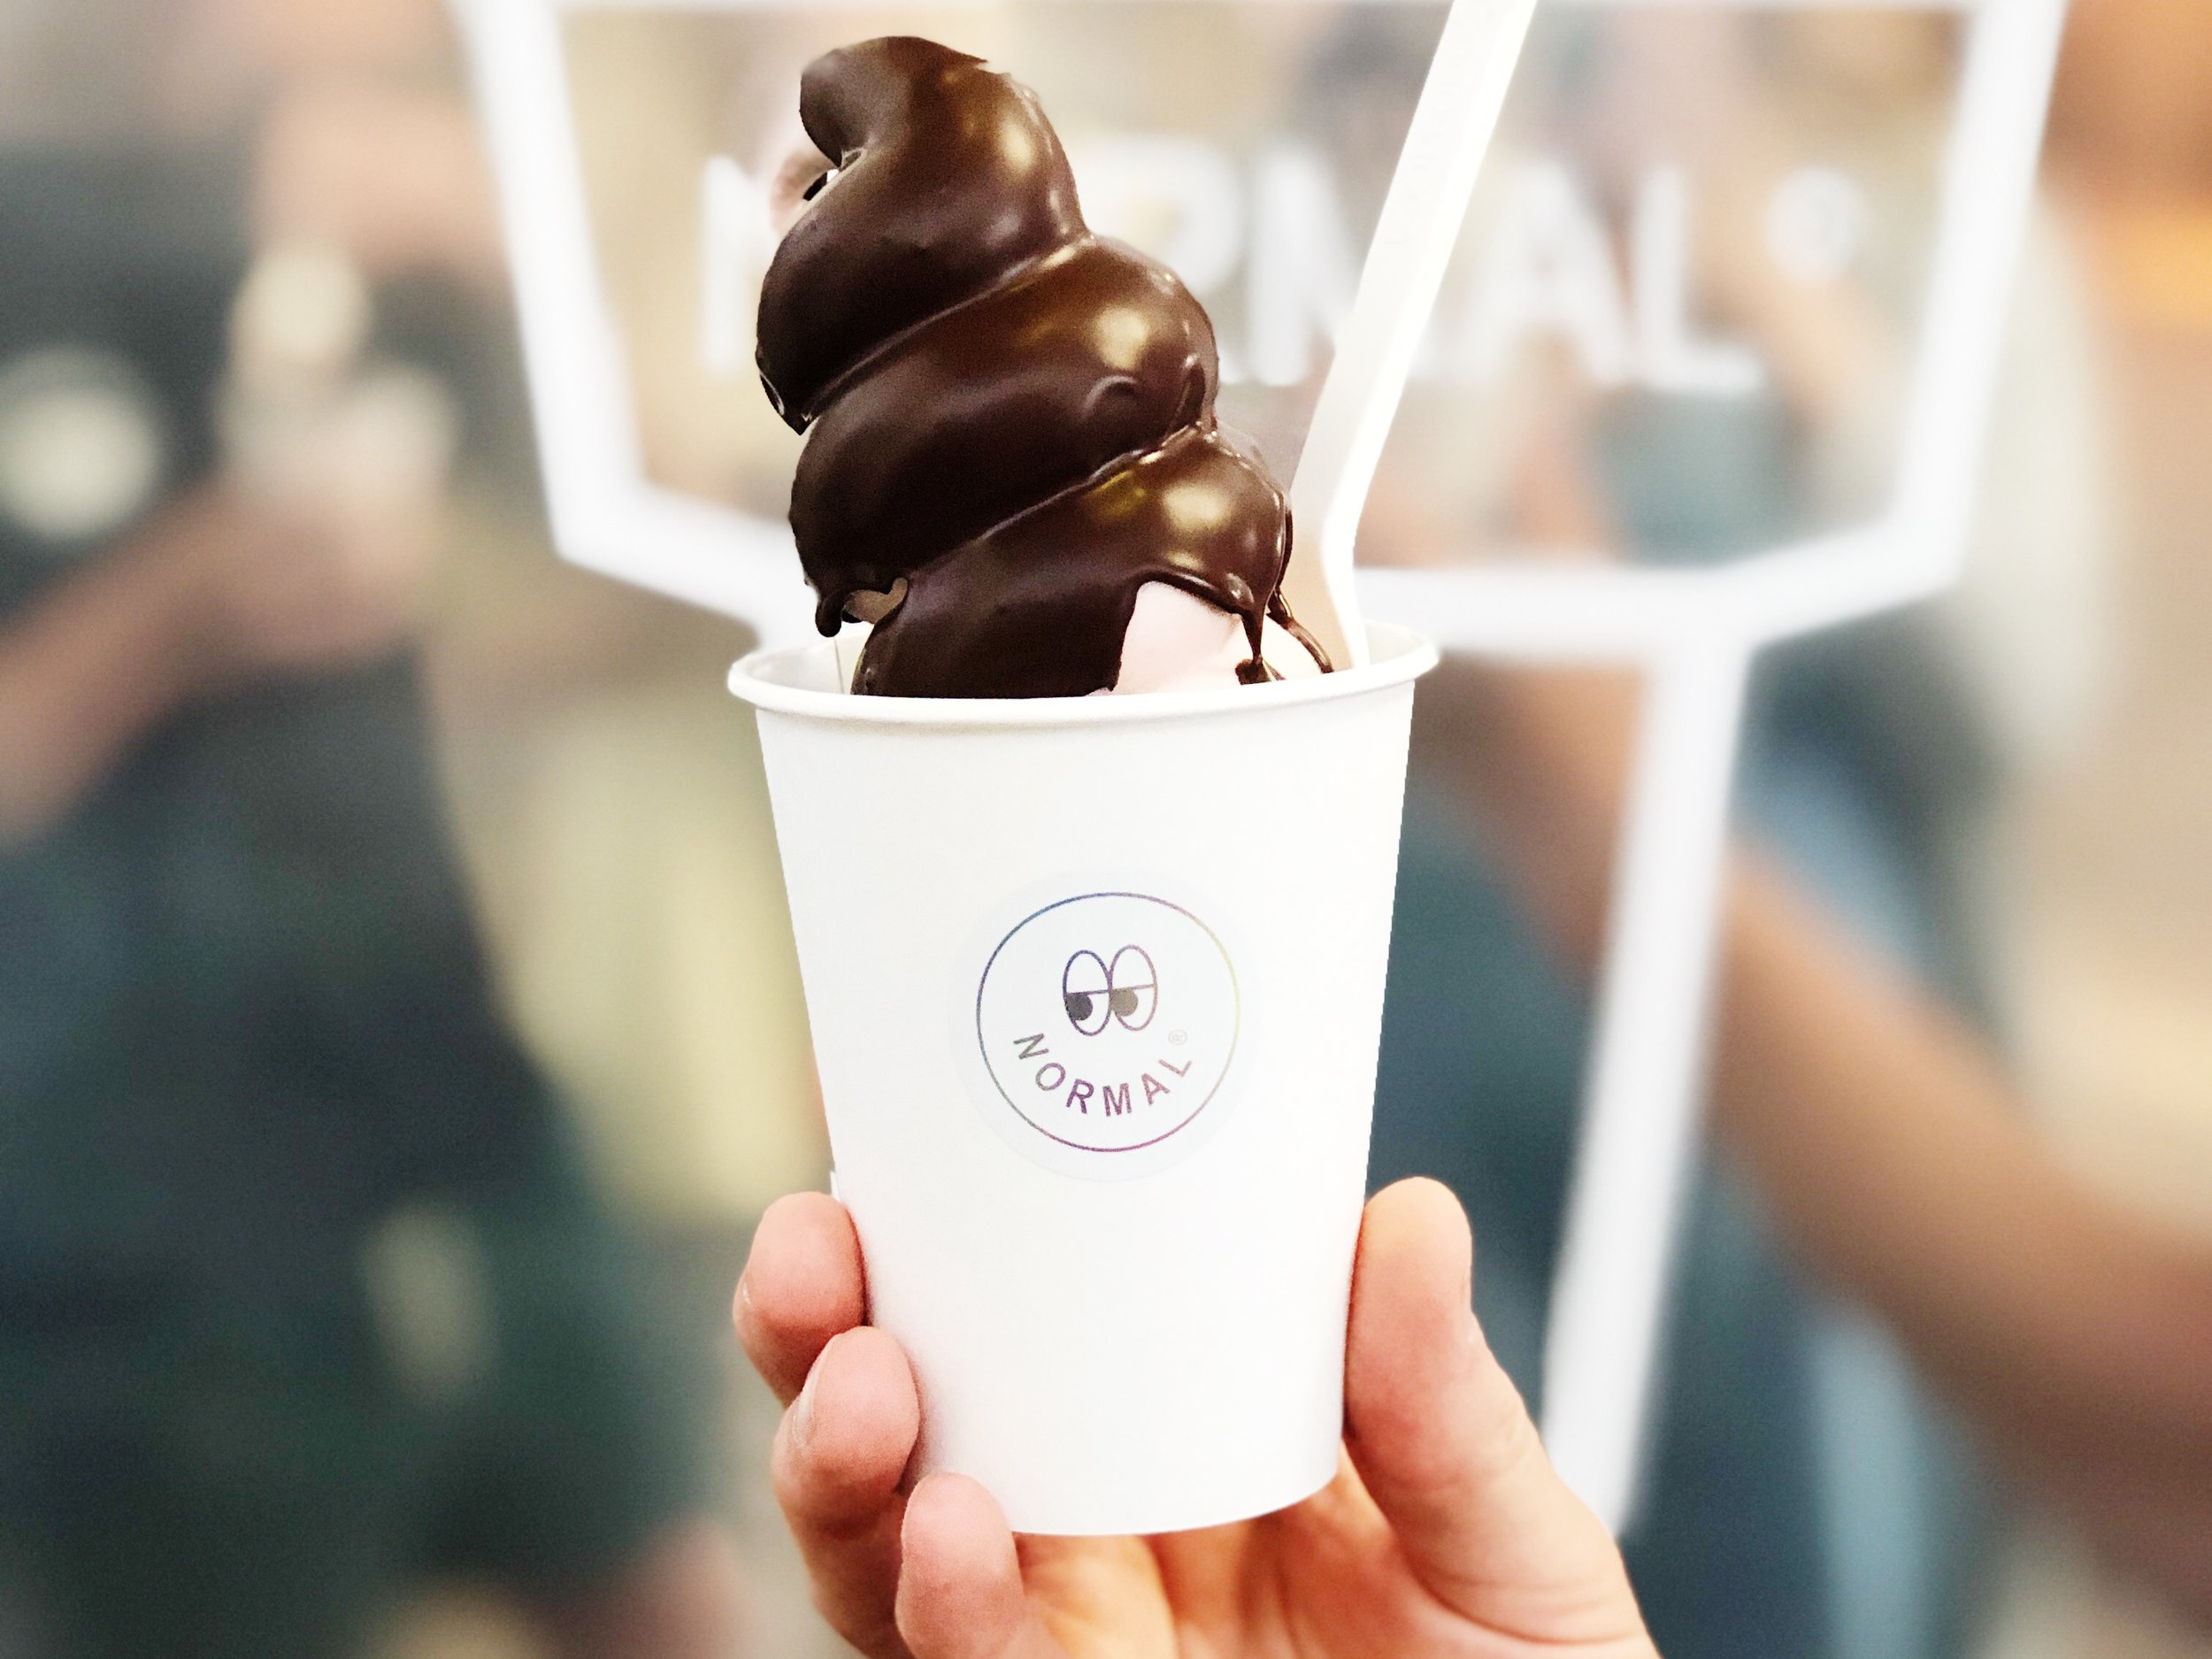 Normal Ice Cream uses our chocolate for all of their chocolate shells, bases, and chocolate-themed composed cones.